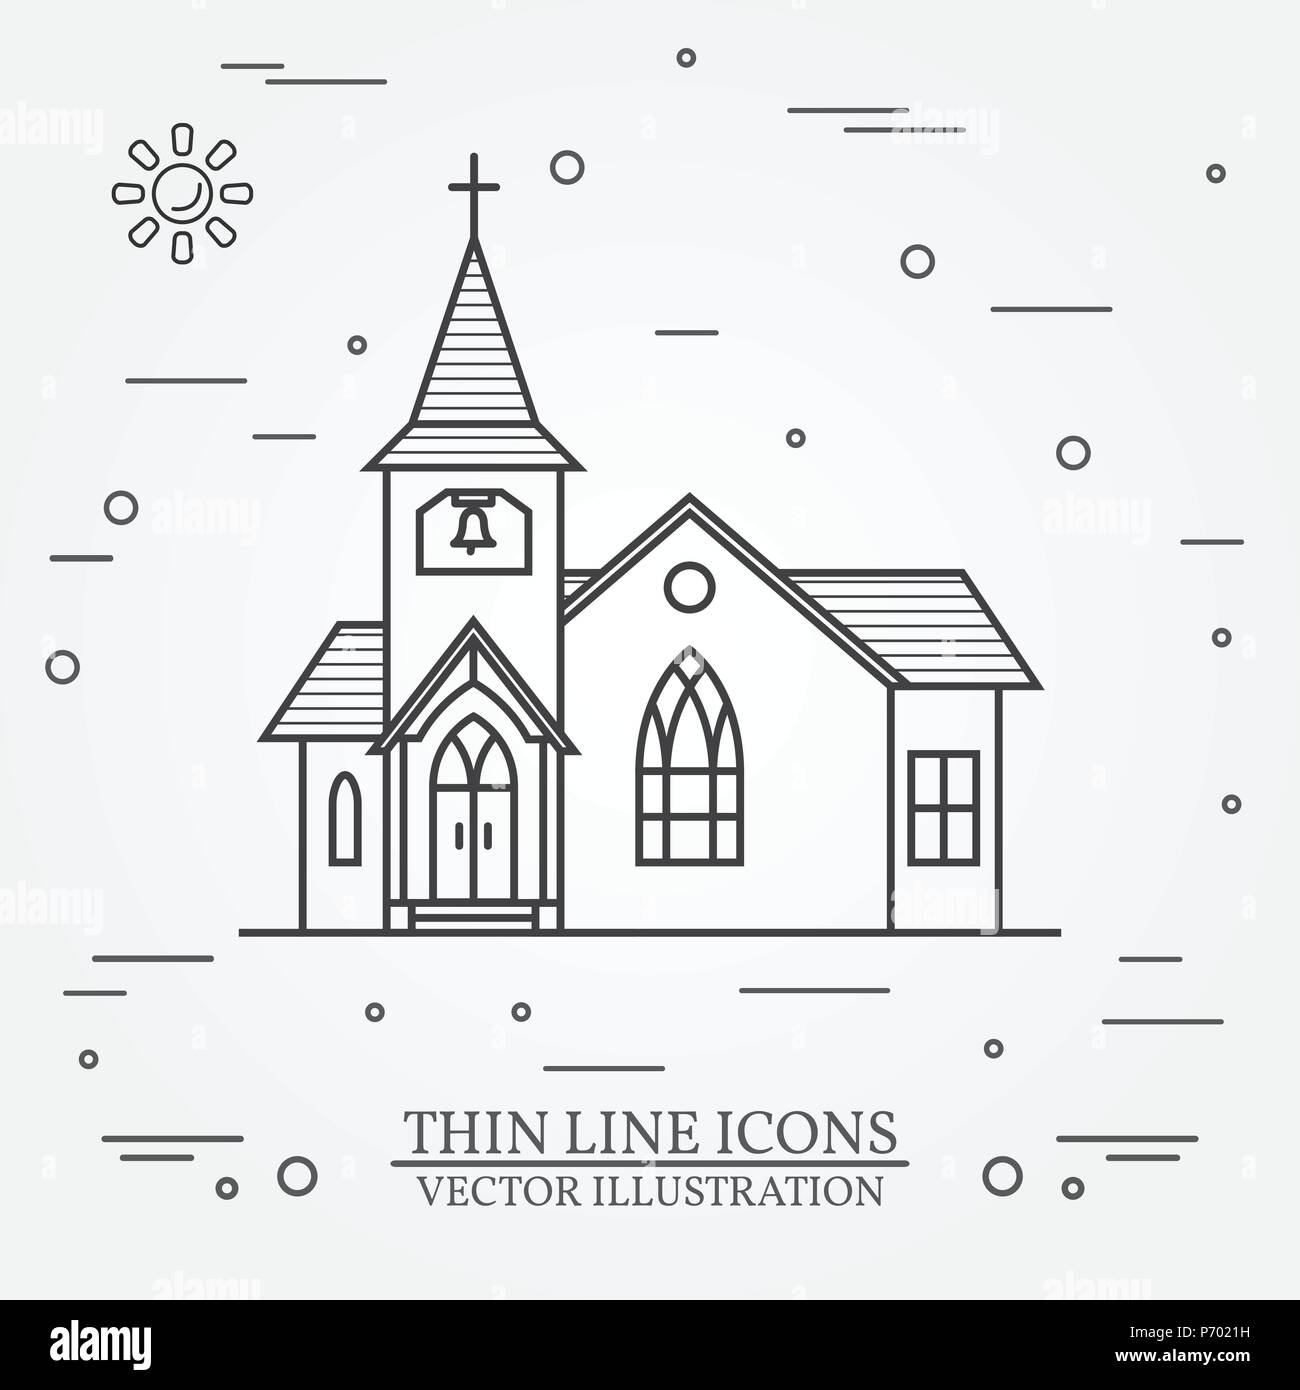 Vector thin line icon church. For web design and application interface, also useful for infographics. Vector illustration. - Stock Vector